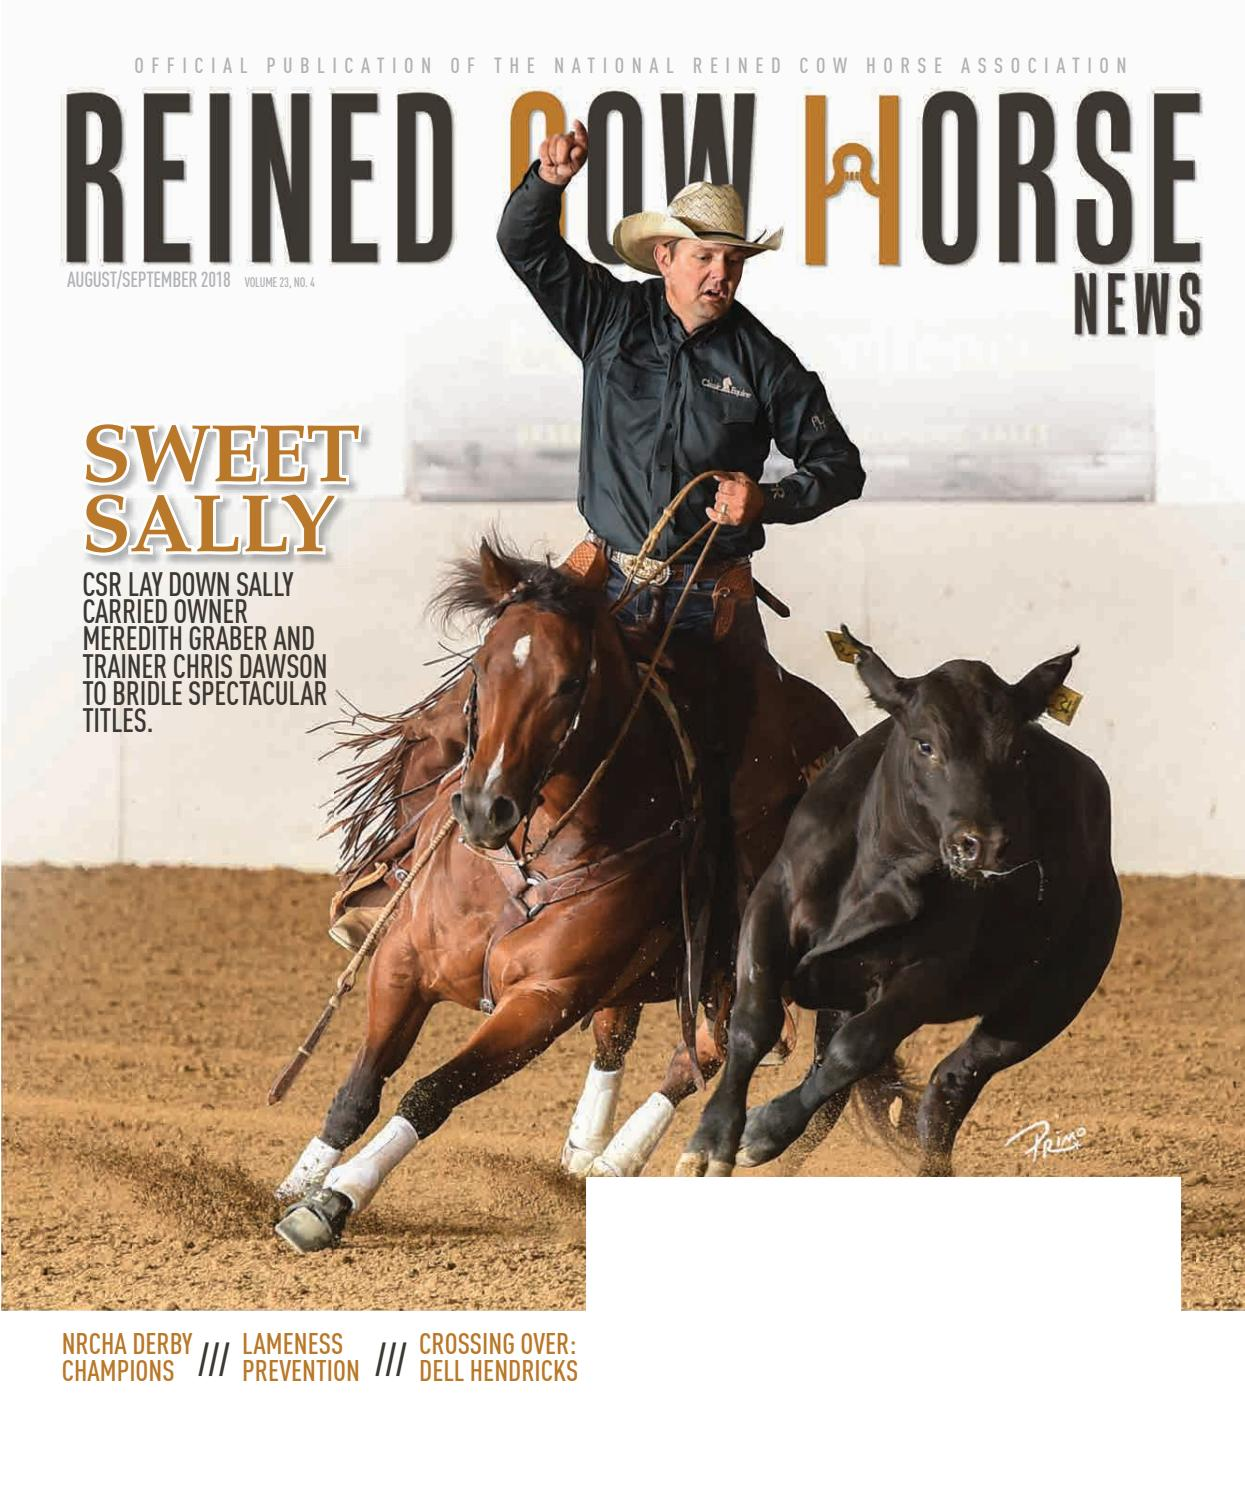 9f50ef6afa5a90 Reined Cow Horse News August September 2018 by Cowboy Publishing Group -  issuu